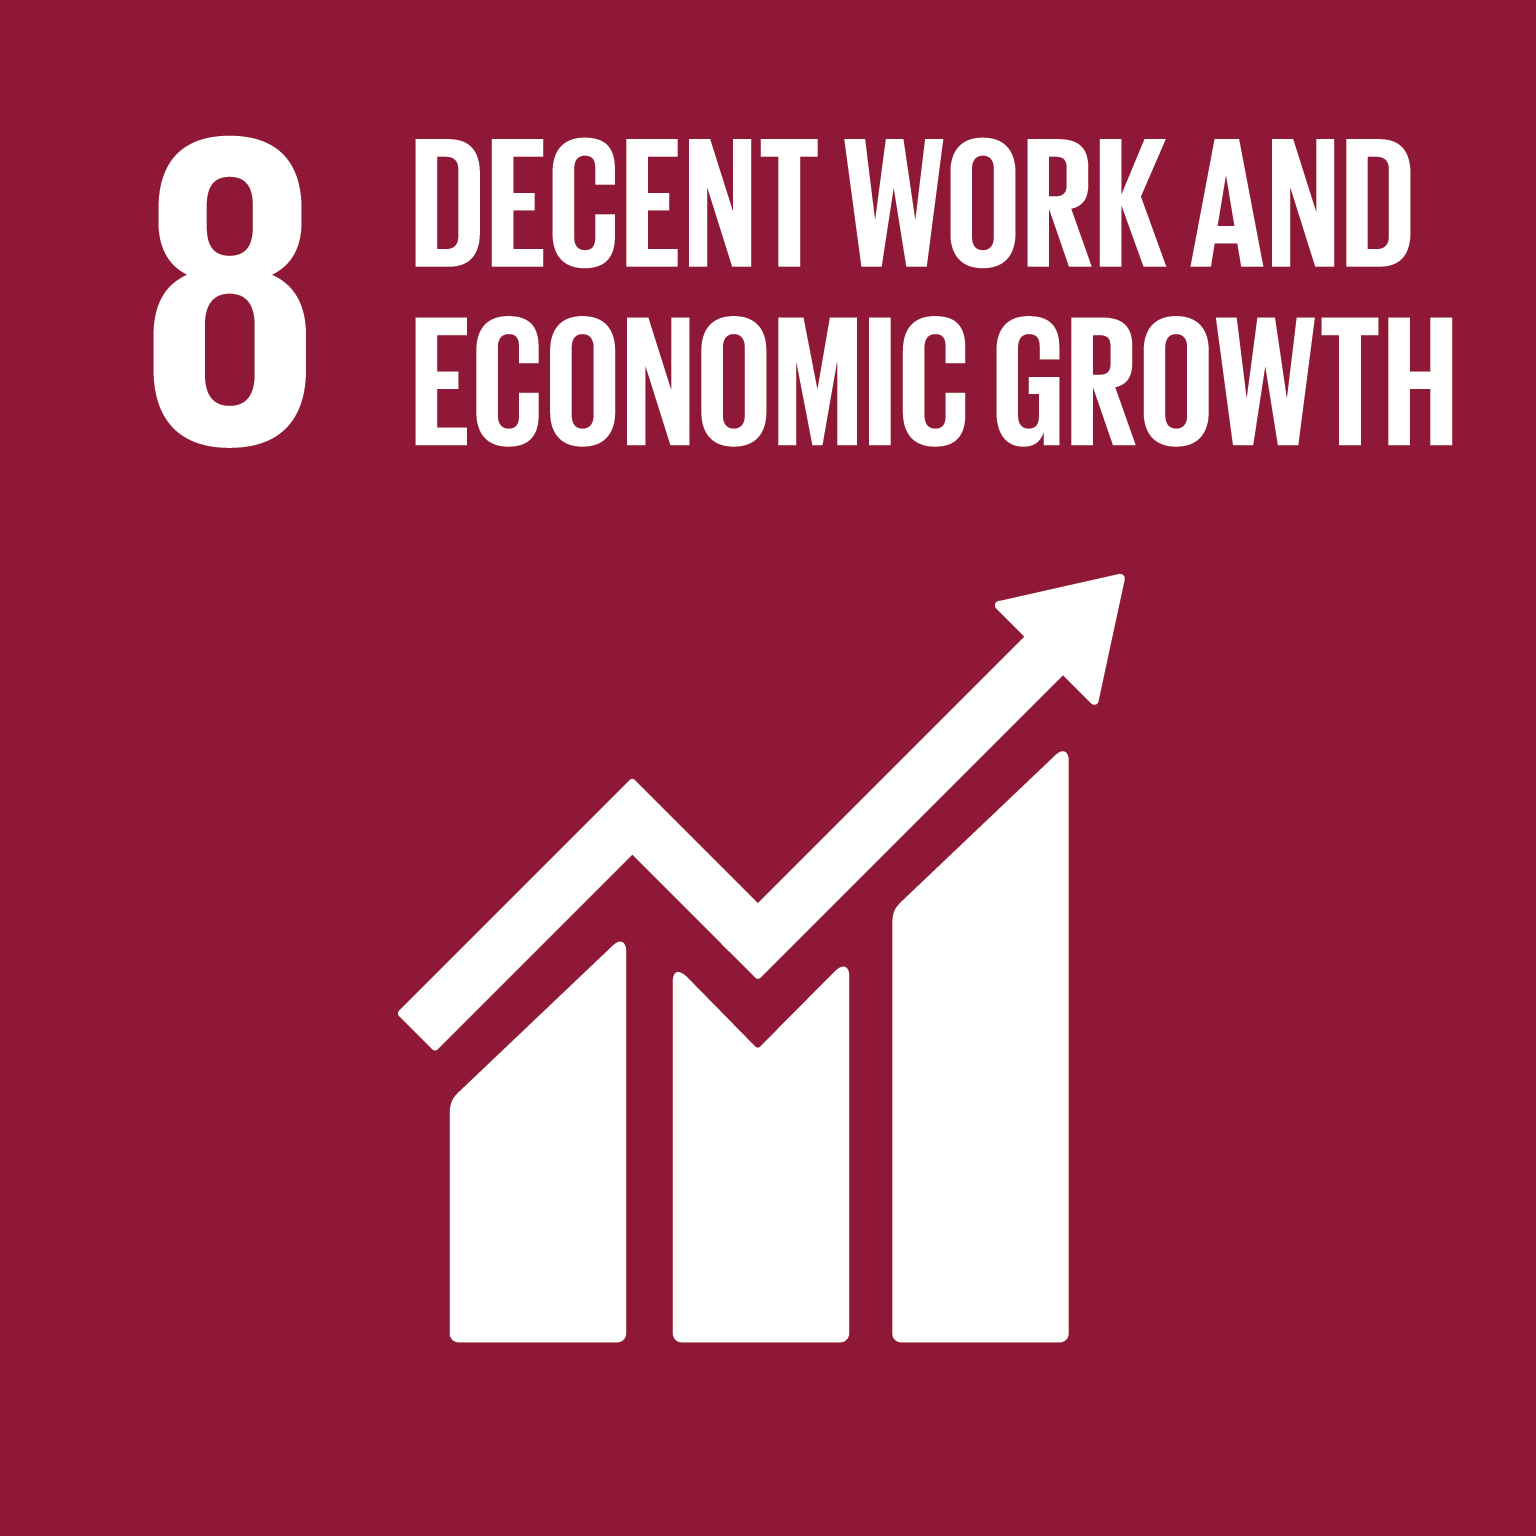 Goal 8 | Department of Economic and Social Affairs